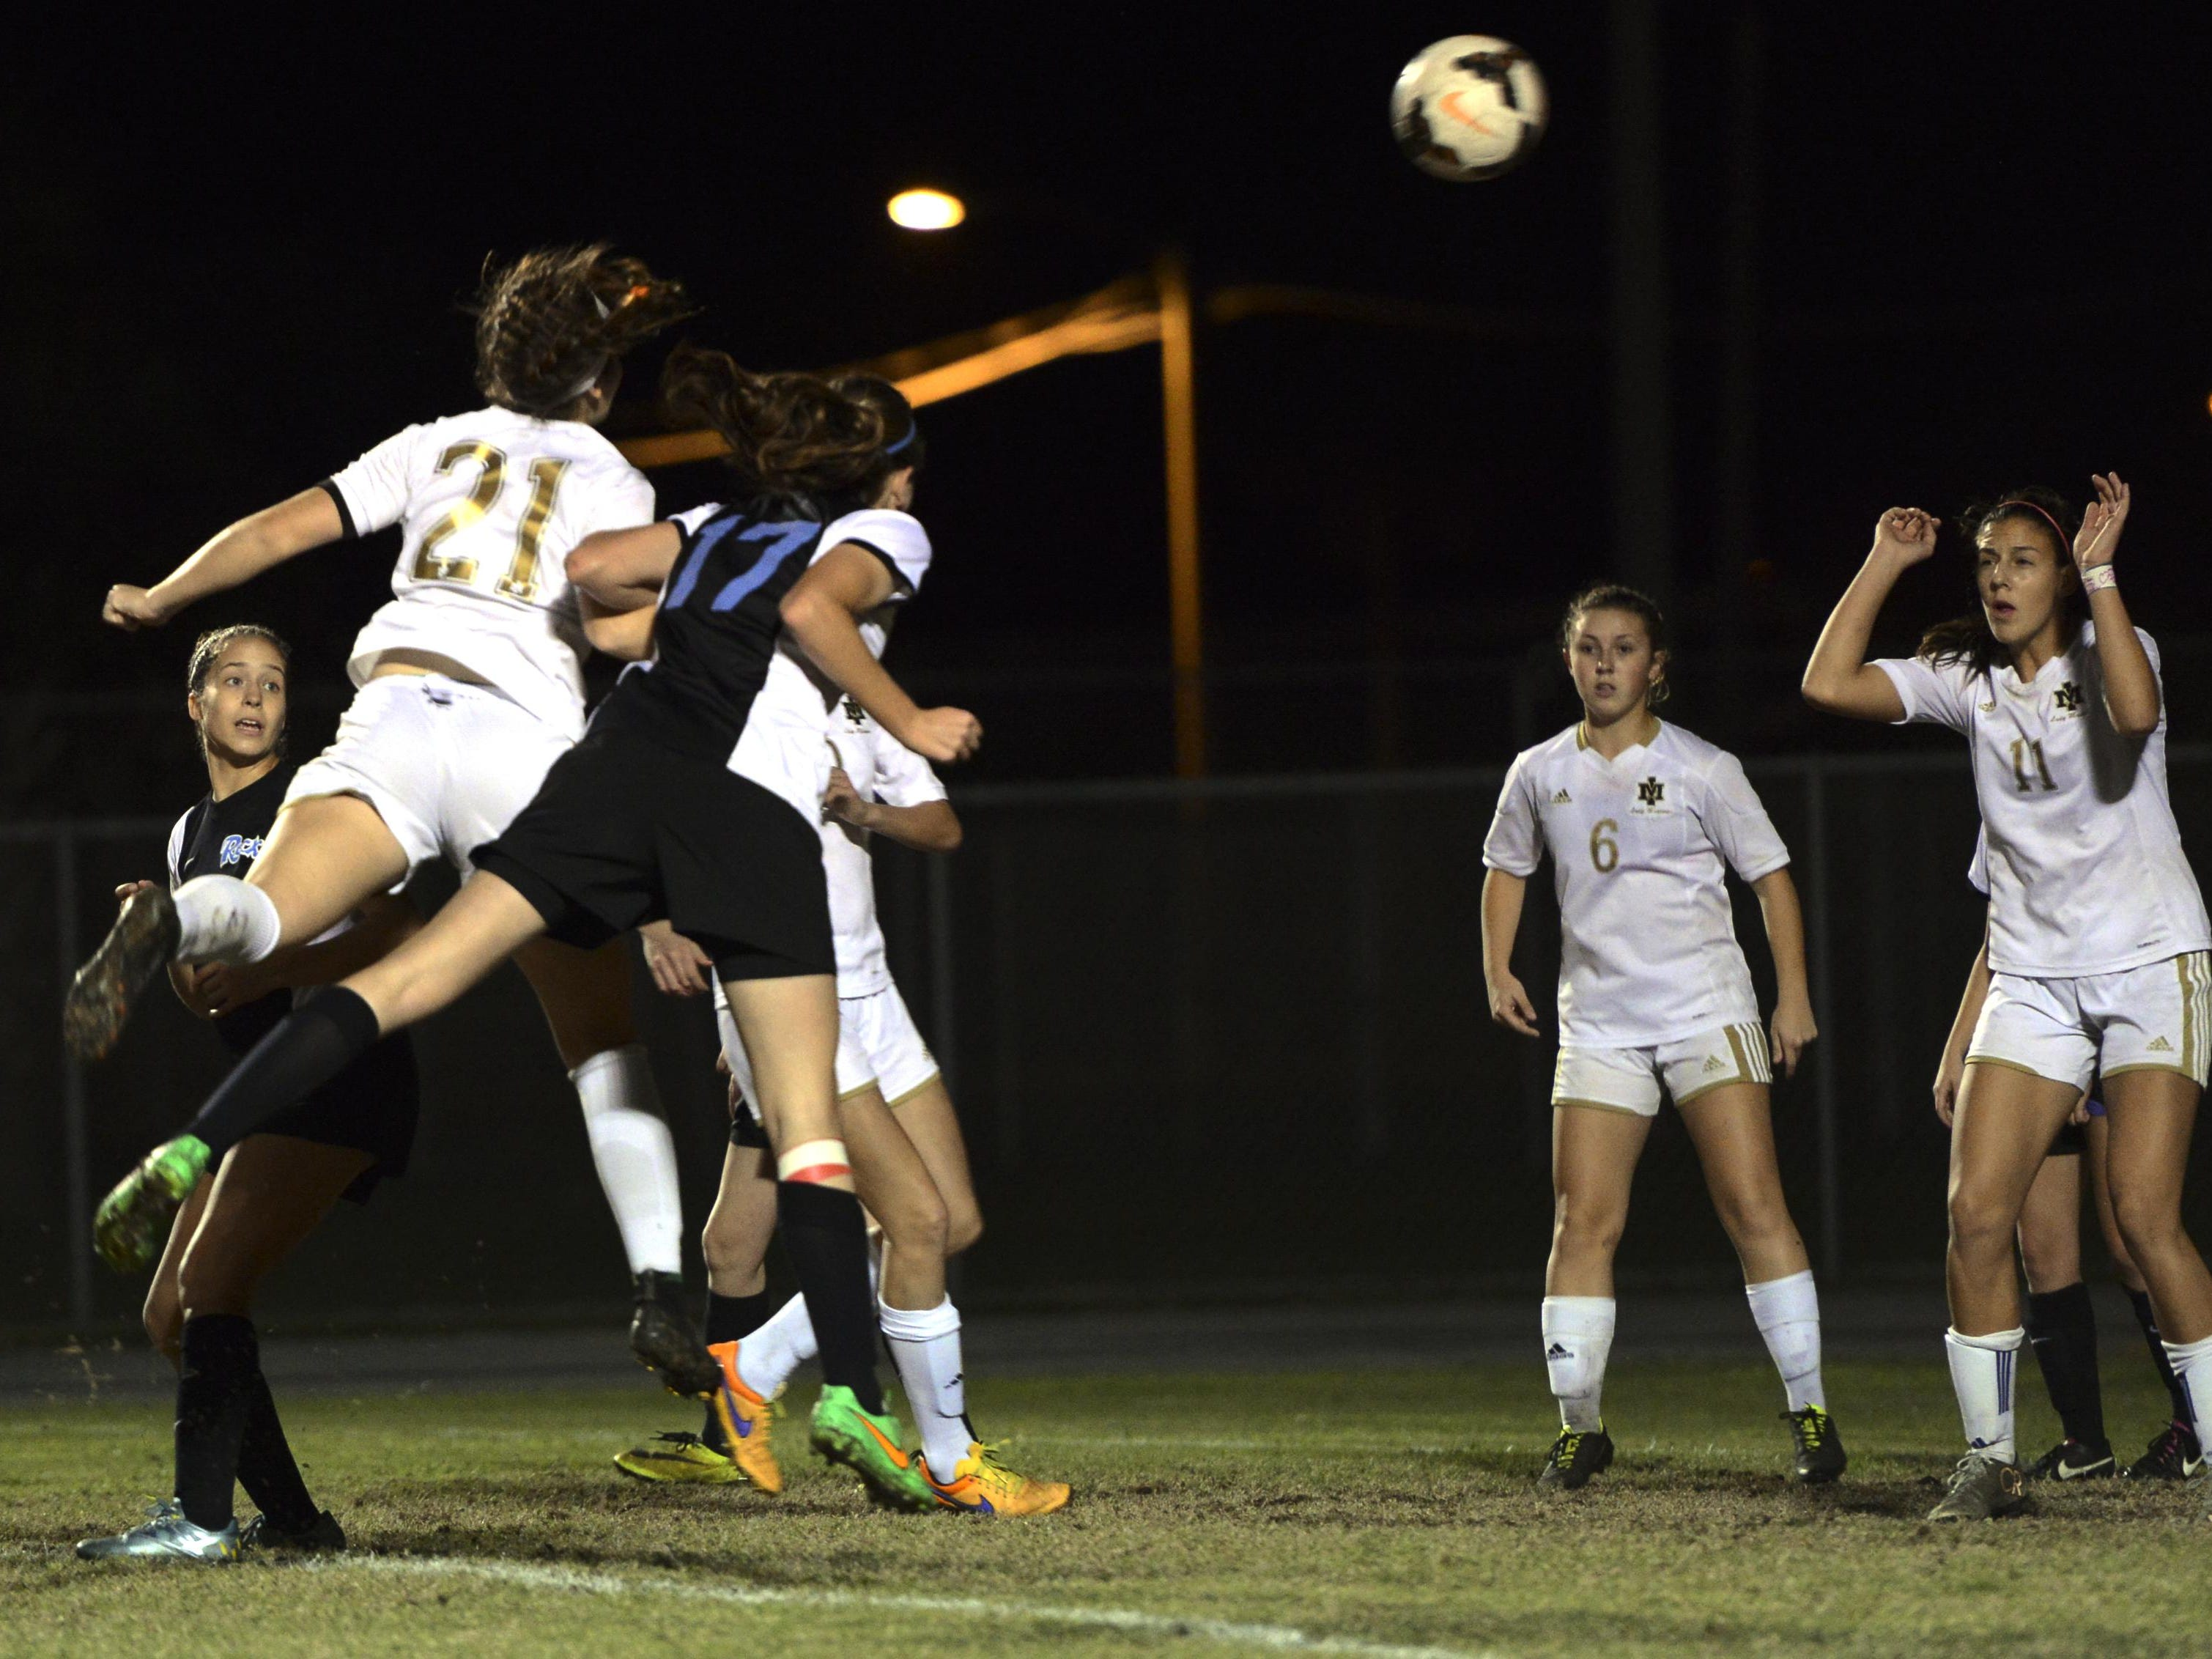 Merritt Island's Kaley Verpaele (21) scores on a header during Friday's district championship game against Rockledge.